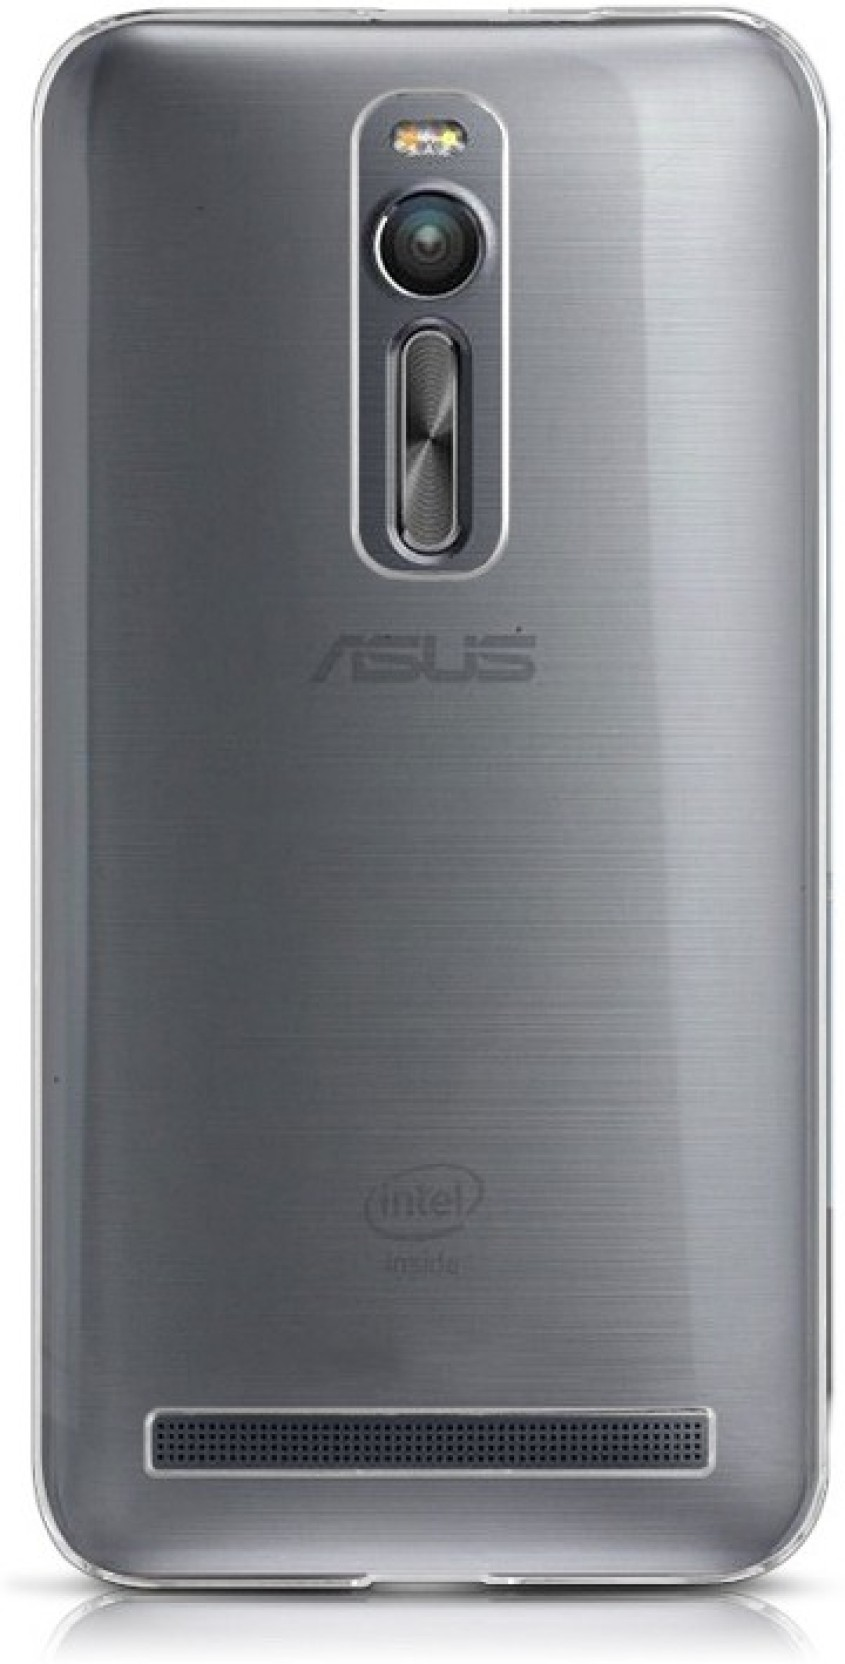 Dealclues Back Cover For Asus Zenfone 2 Deluxe Ze551ml Softcase Silikon Transparan Share